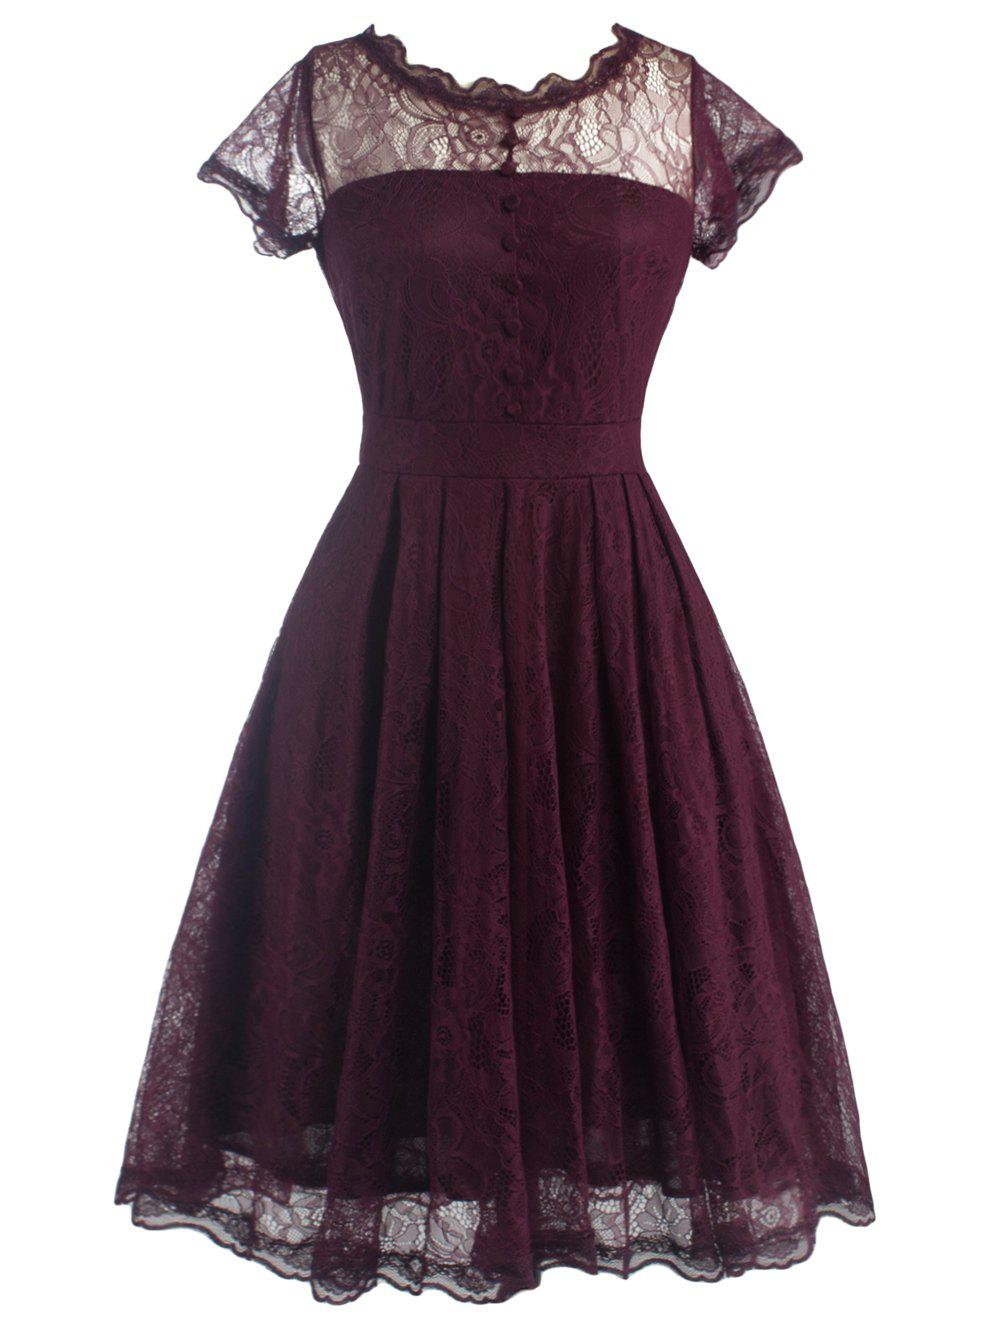 Funky Short Wedding A Line Dress With SleevesWOMEN<br><br>Size: M; Color: WINE RED; Style: Vintage; Material: Cotton Blend,Lace,Polyester; Silhouette: A-Line; Dresses Length: Knee-Length; Neckline: Ruffled; Sleeve Length: Short Sleeves; Embellishment: Button; Pattern Type: Solid; With Belt: No; Season: Summer; Weight: 0.275kg; Package Contents: 1 x Dress;